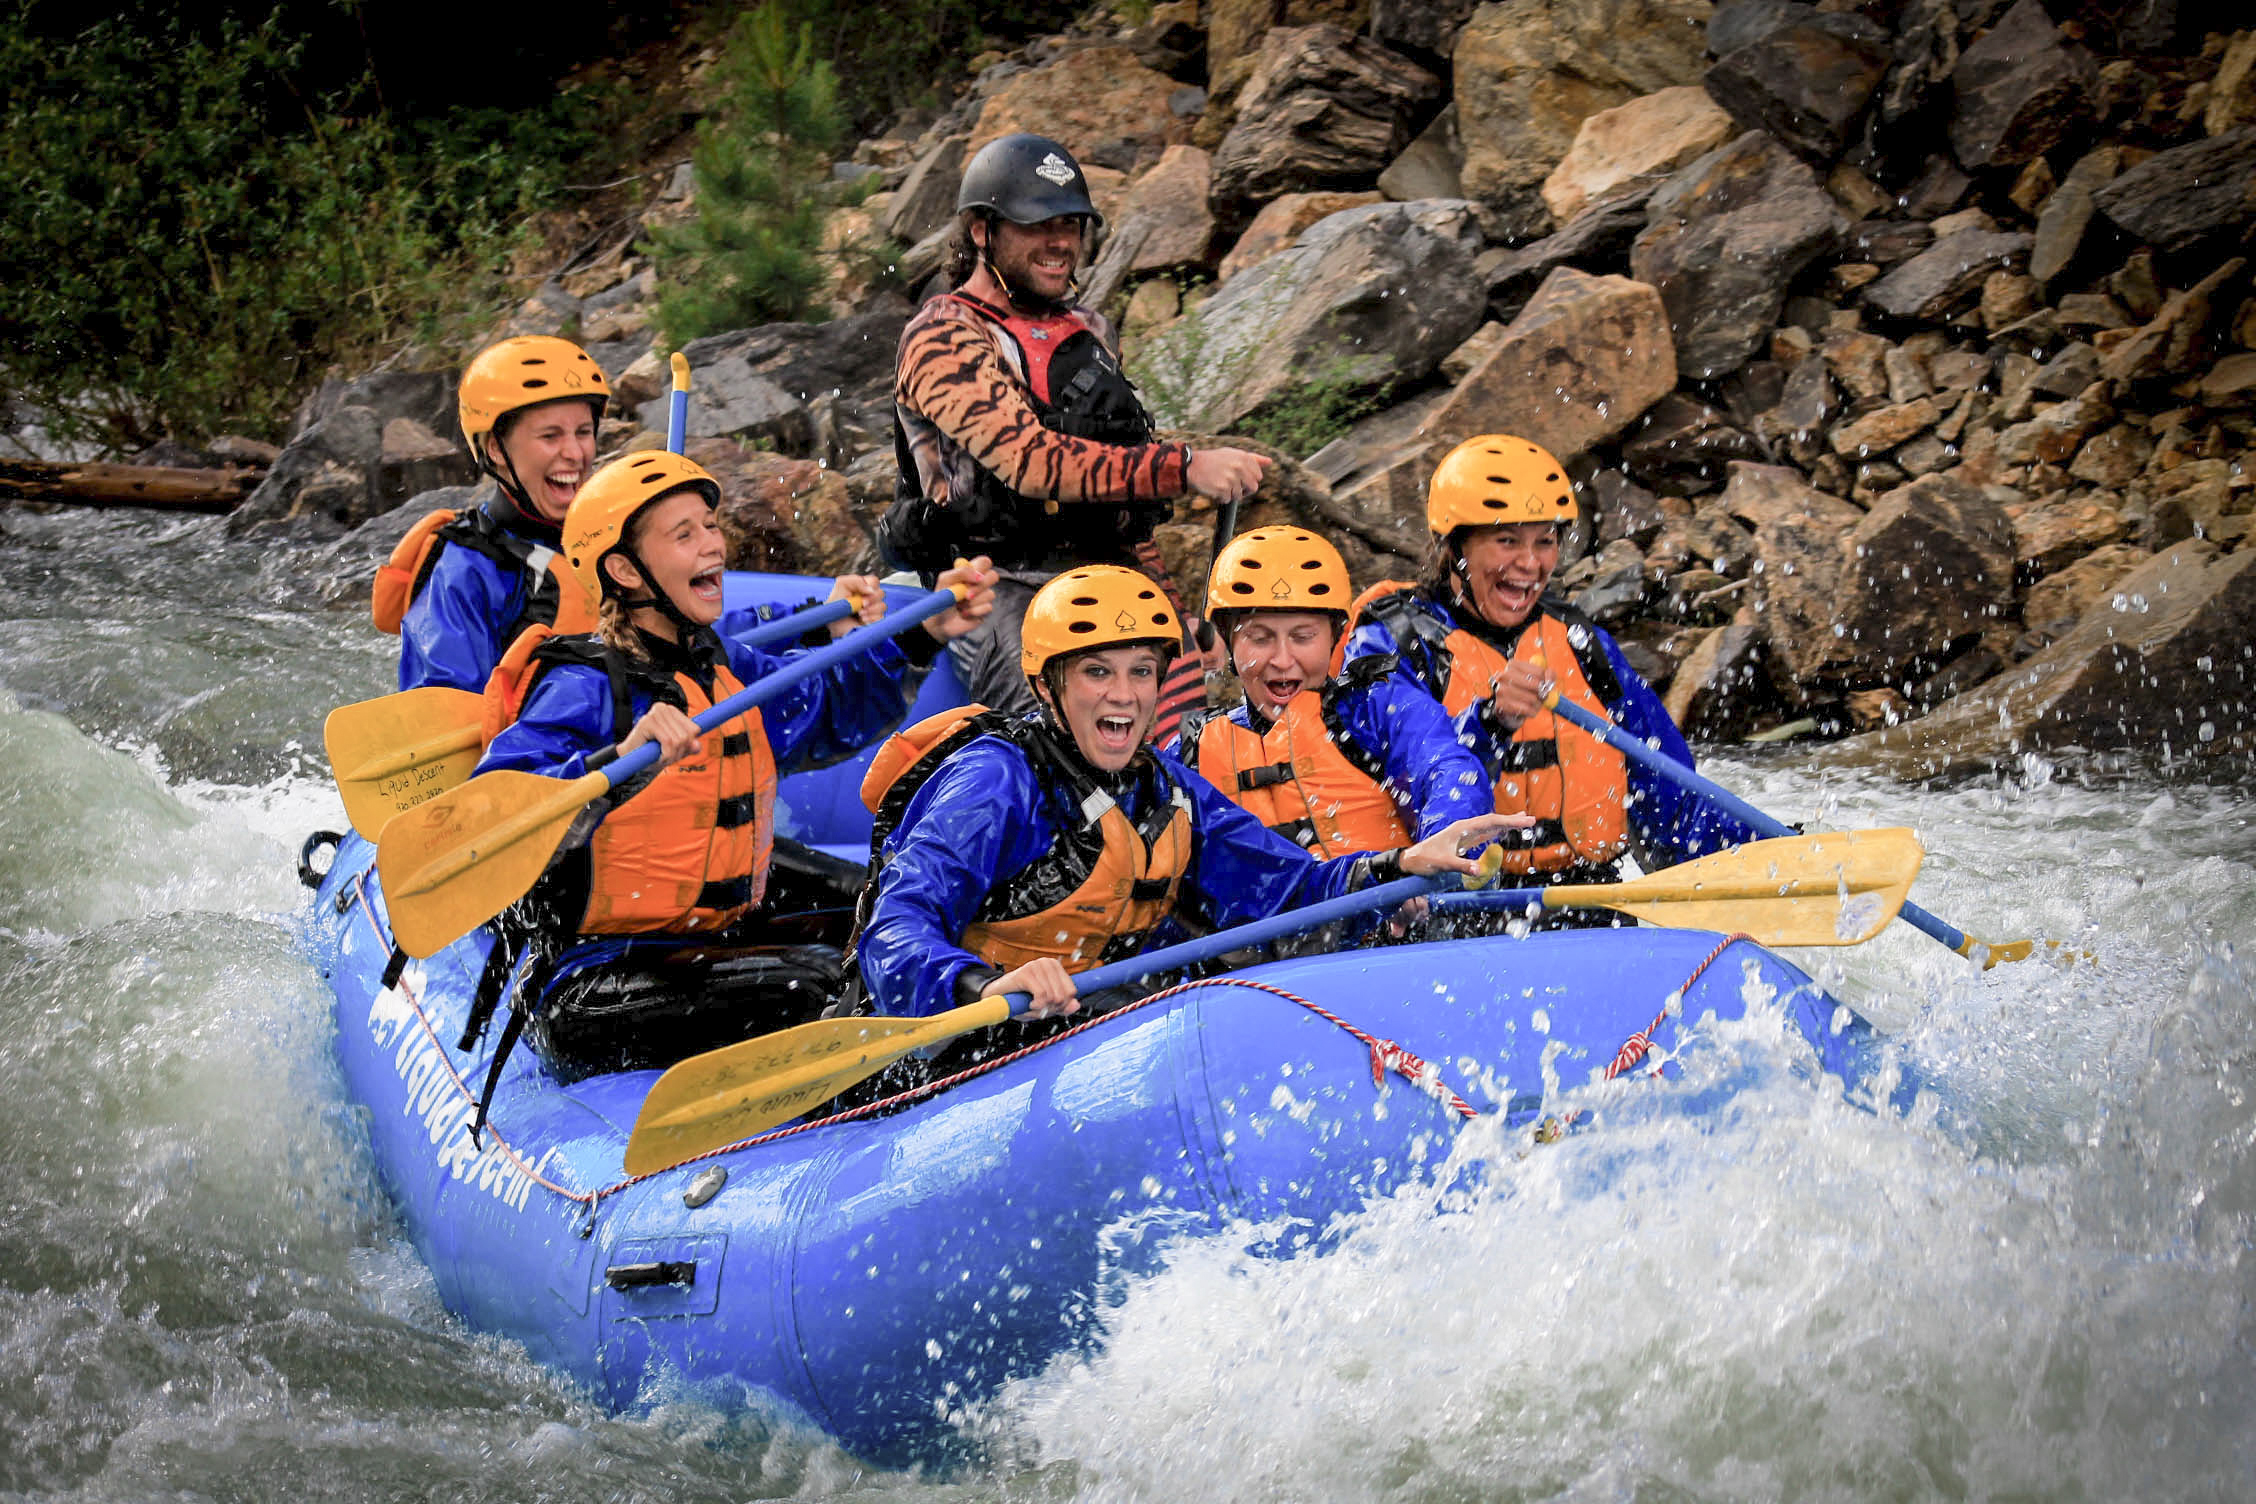 Rafters brace themselves in heavy rapids.